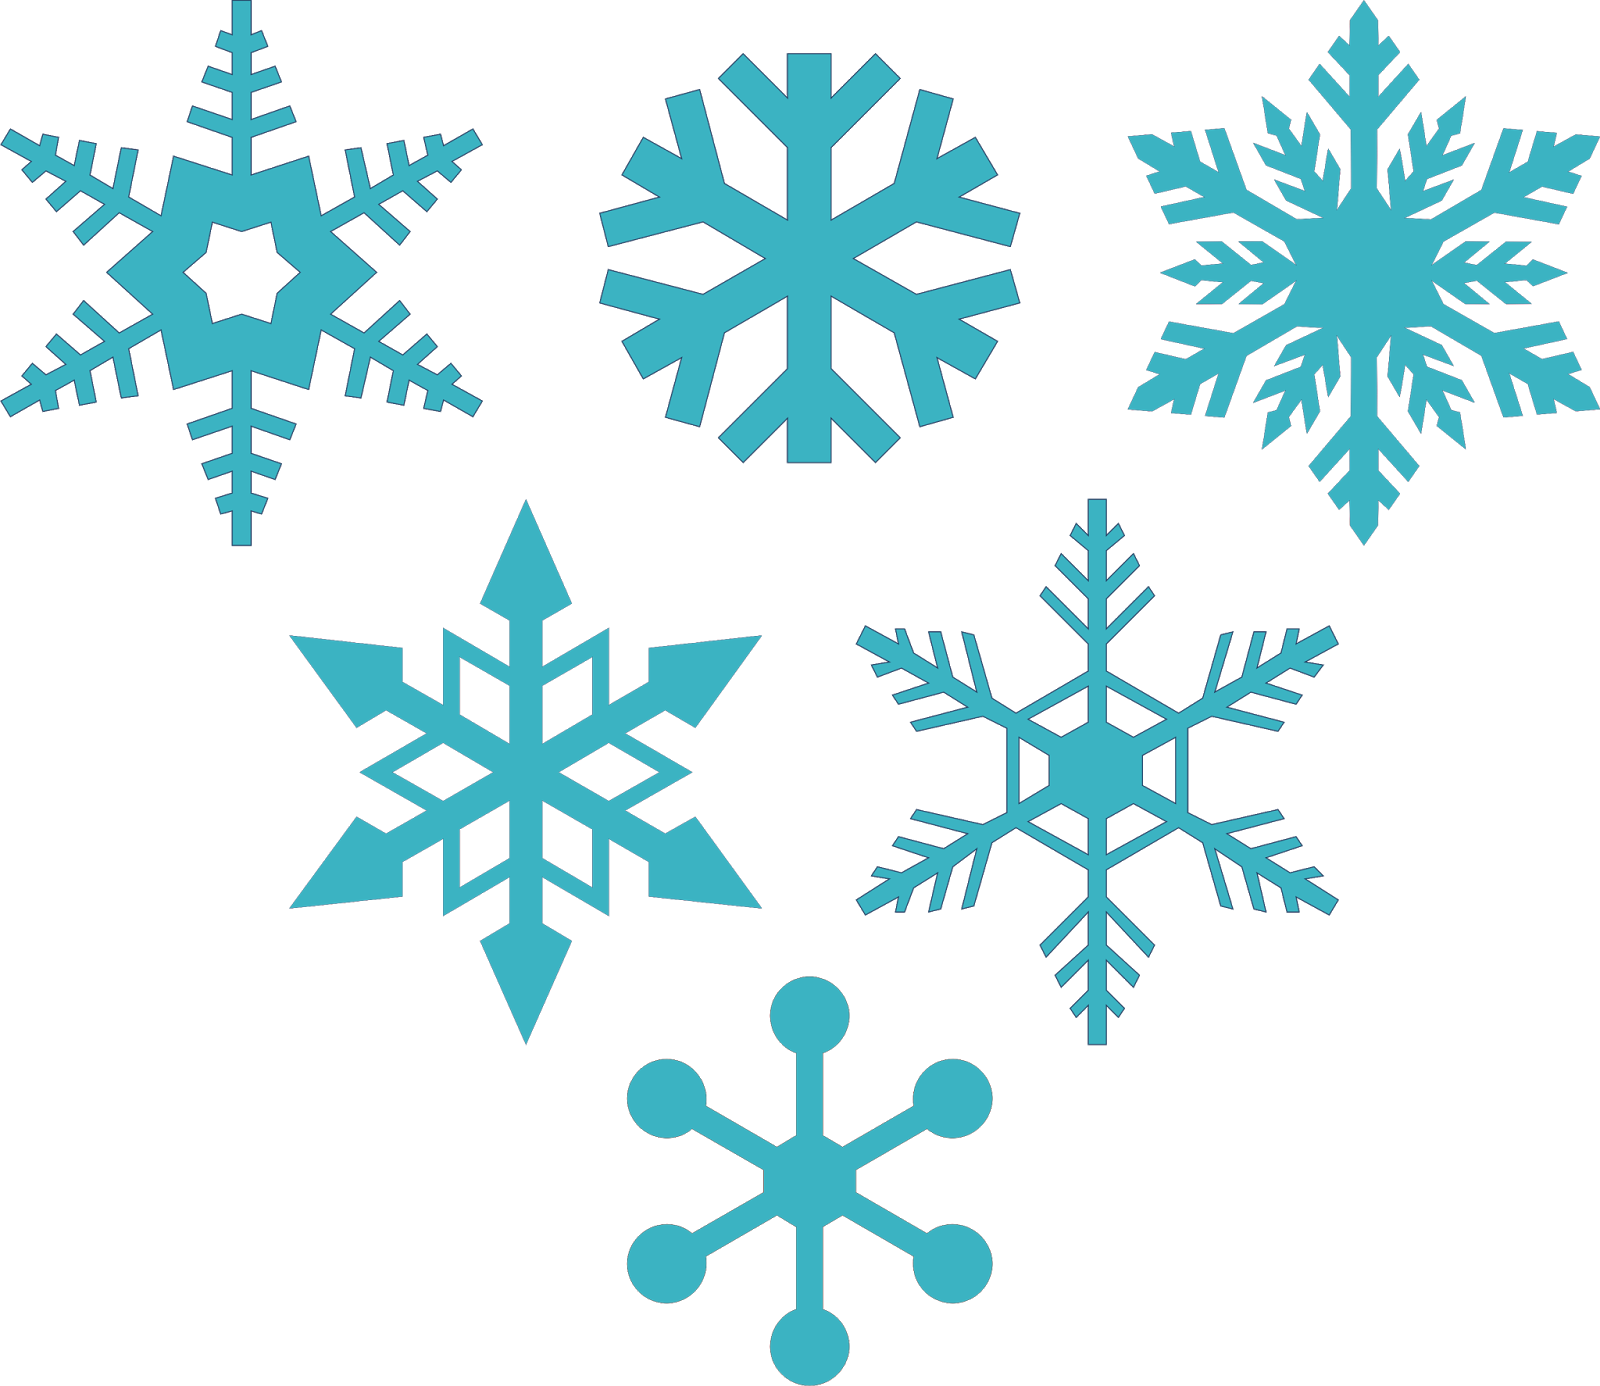 Disney frozen snowflake clipart graphic black and white stock Free Snowflake Images (65+) graphic black and white stock